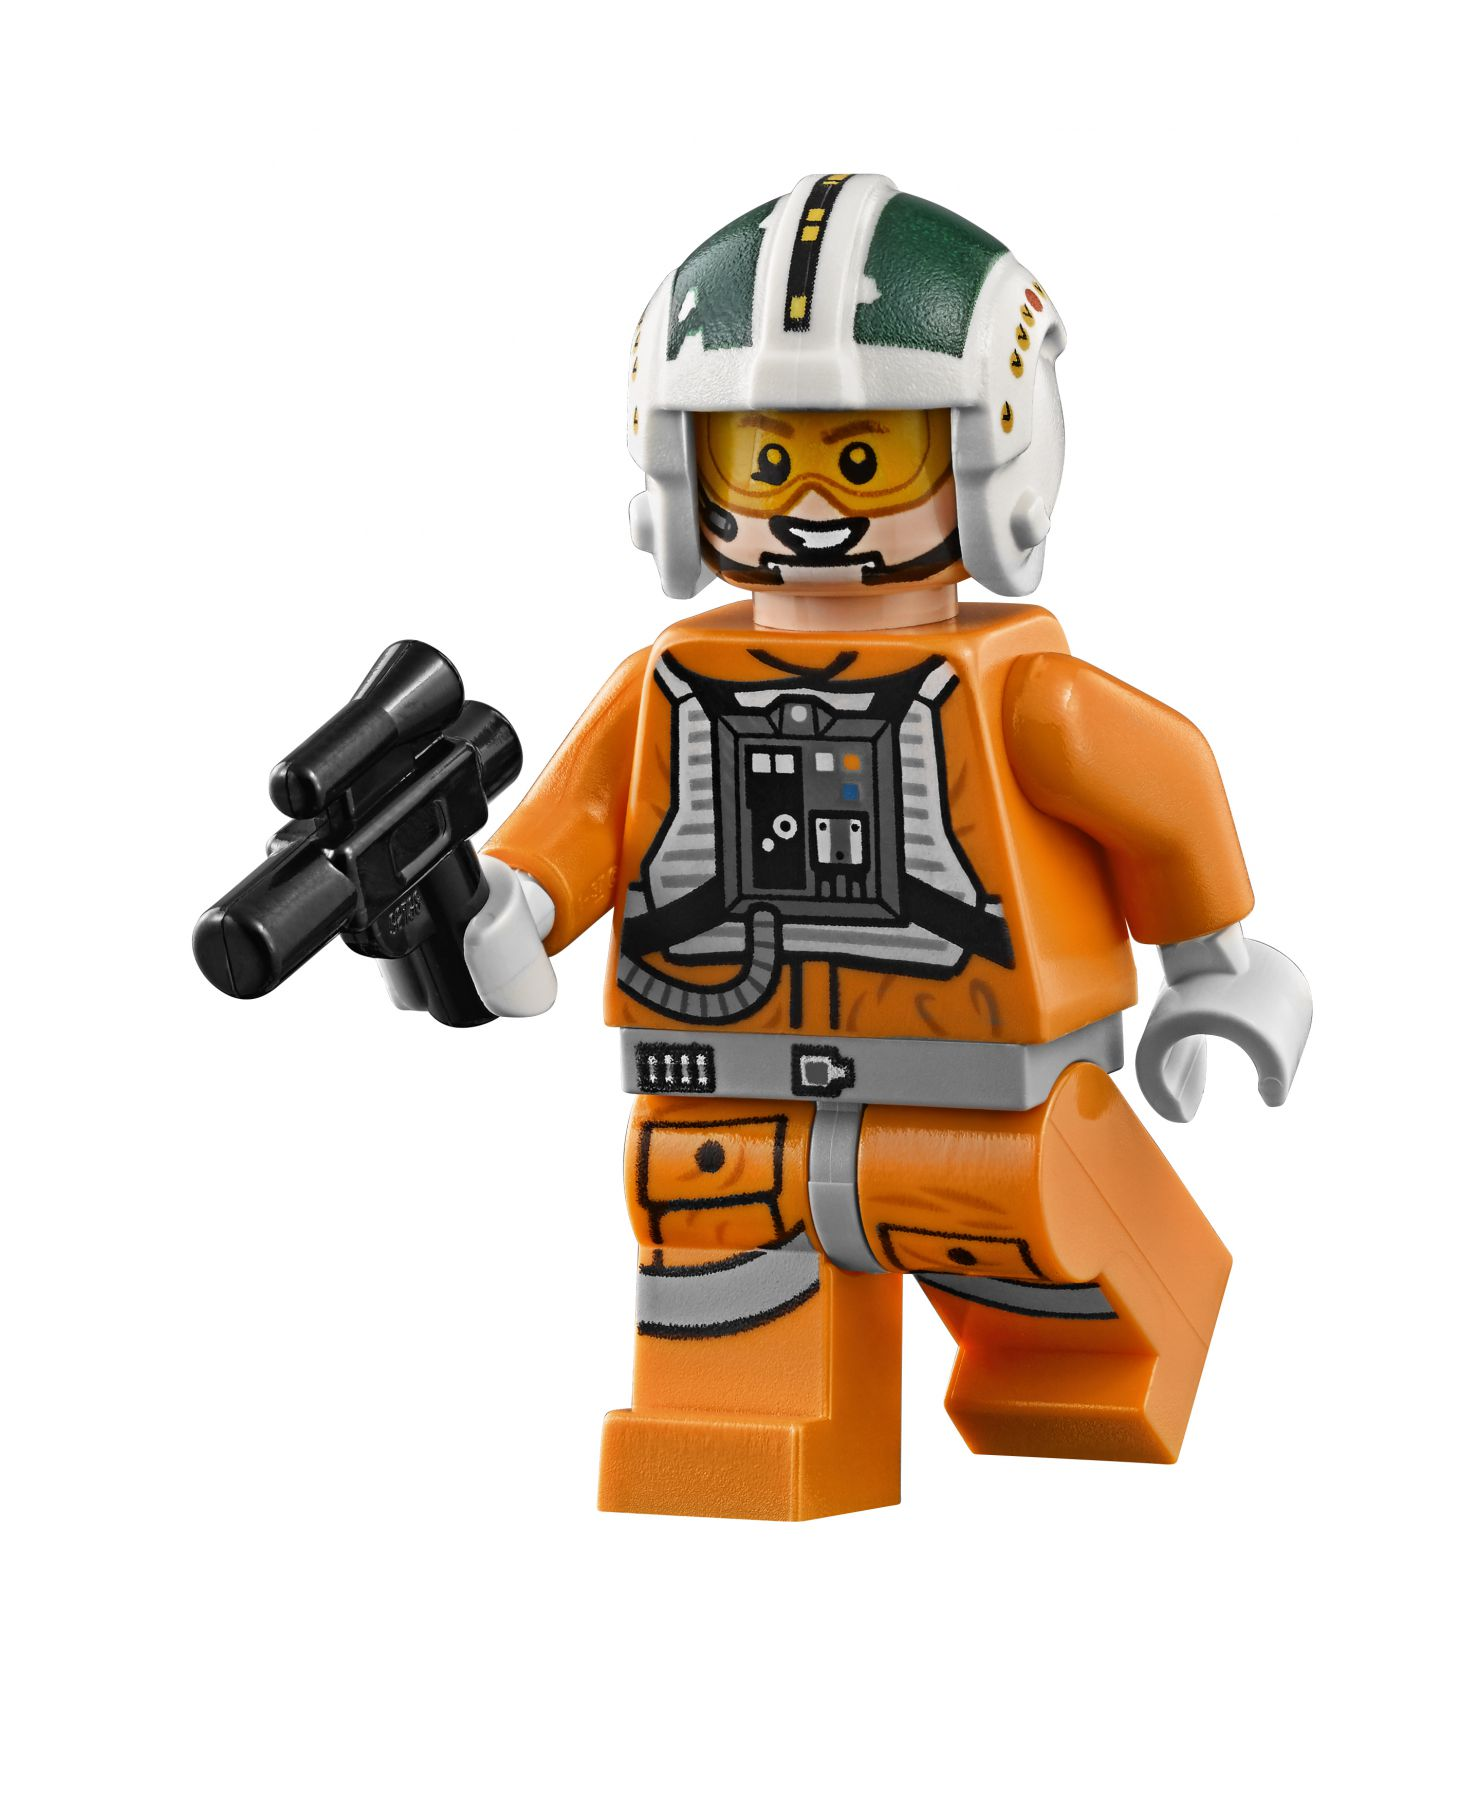 LEGO Star Wars 75098 Angriff auf Hoth™ LEGO-75098-Assault-on-Hoth-Minifigure_17.jpg